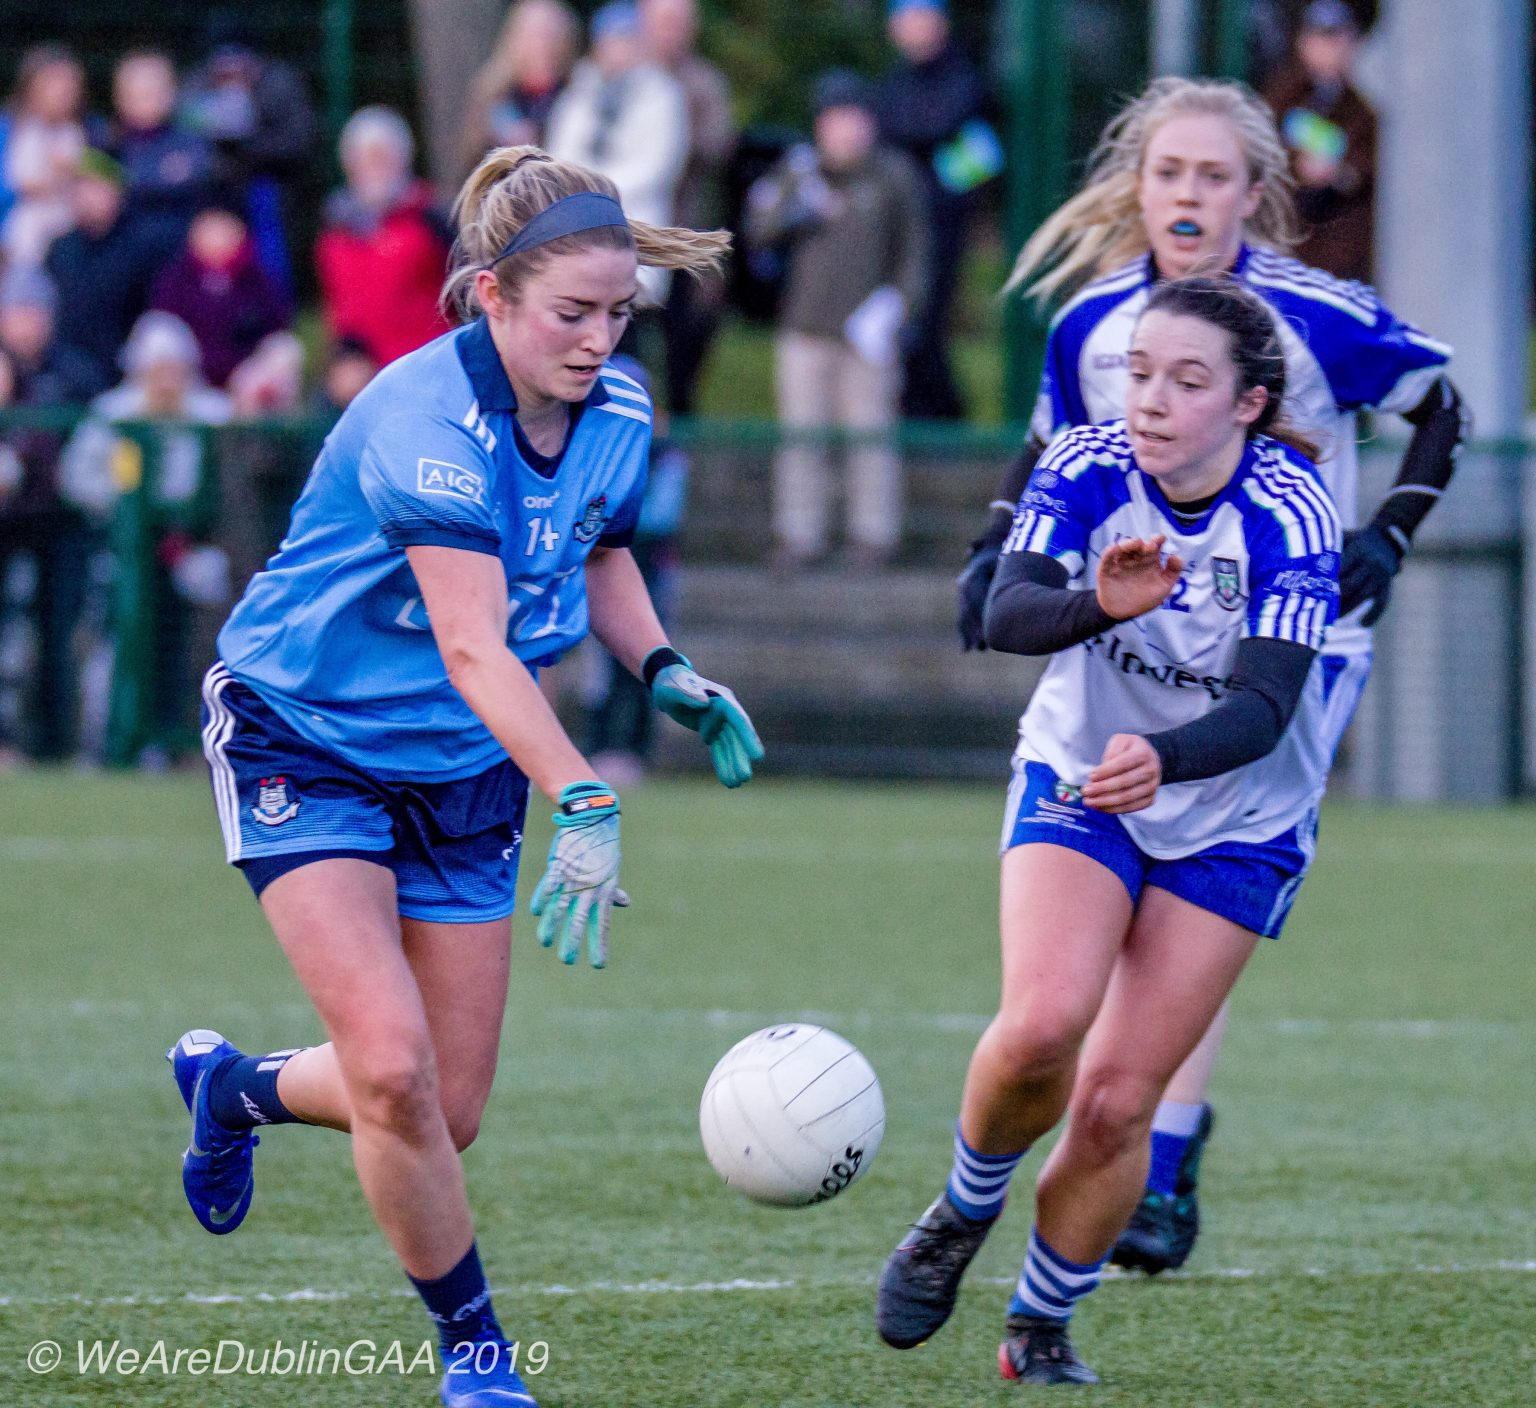 Dublin's Siobhan Killeen in a sky blue jersey and navy shorts scored one of Dublin's goals against Monaghan to help guide Dublin to a League Semi Final Spot